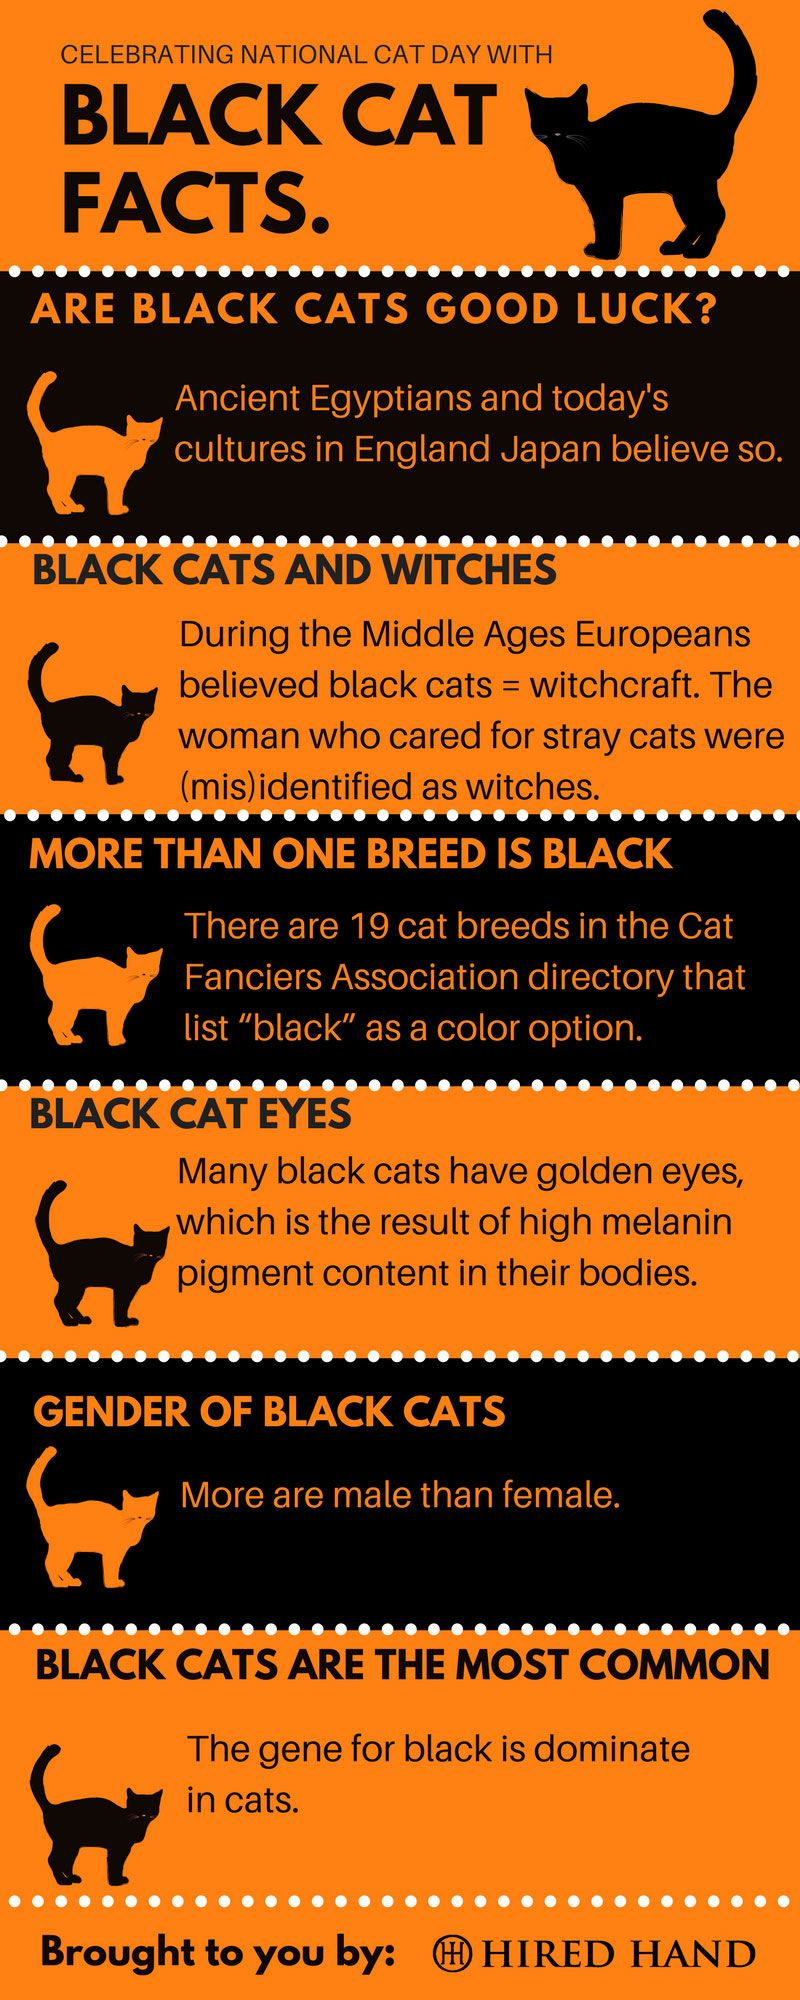 Celebrating National Cat Day with facts about Black Cats